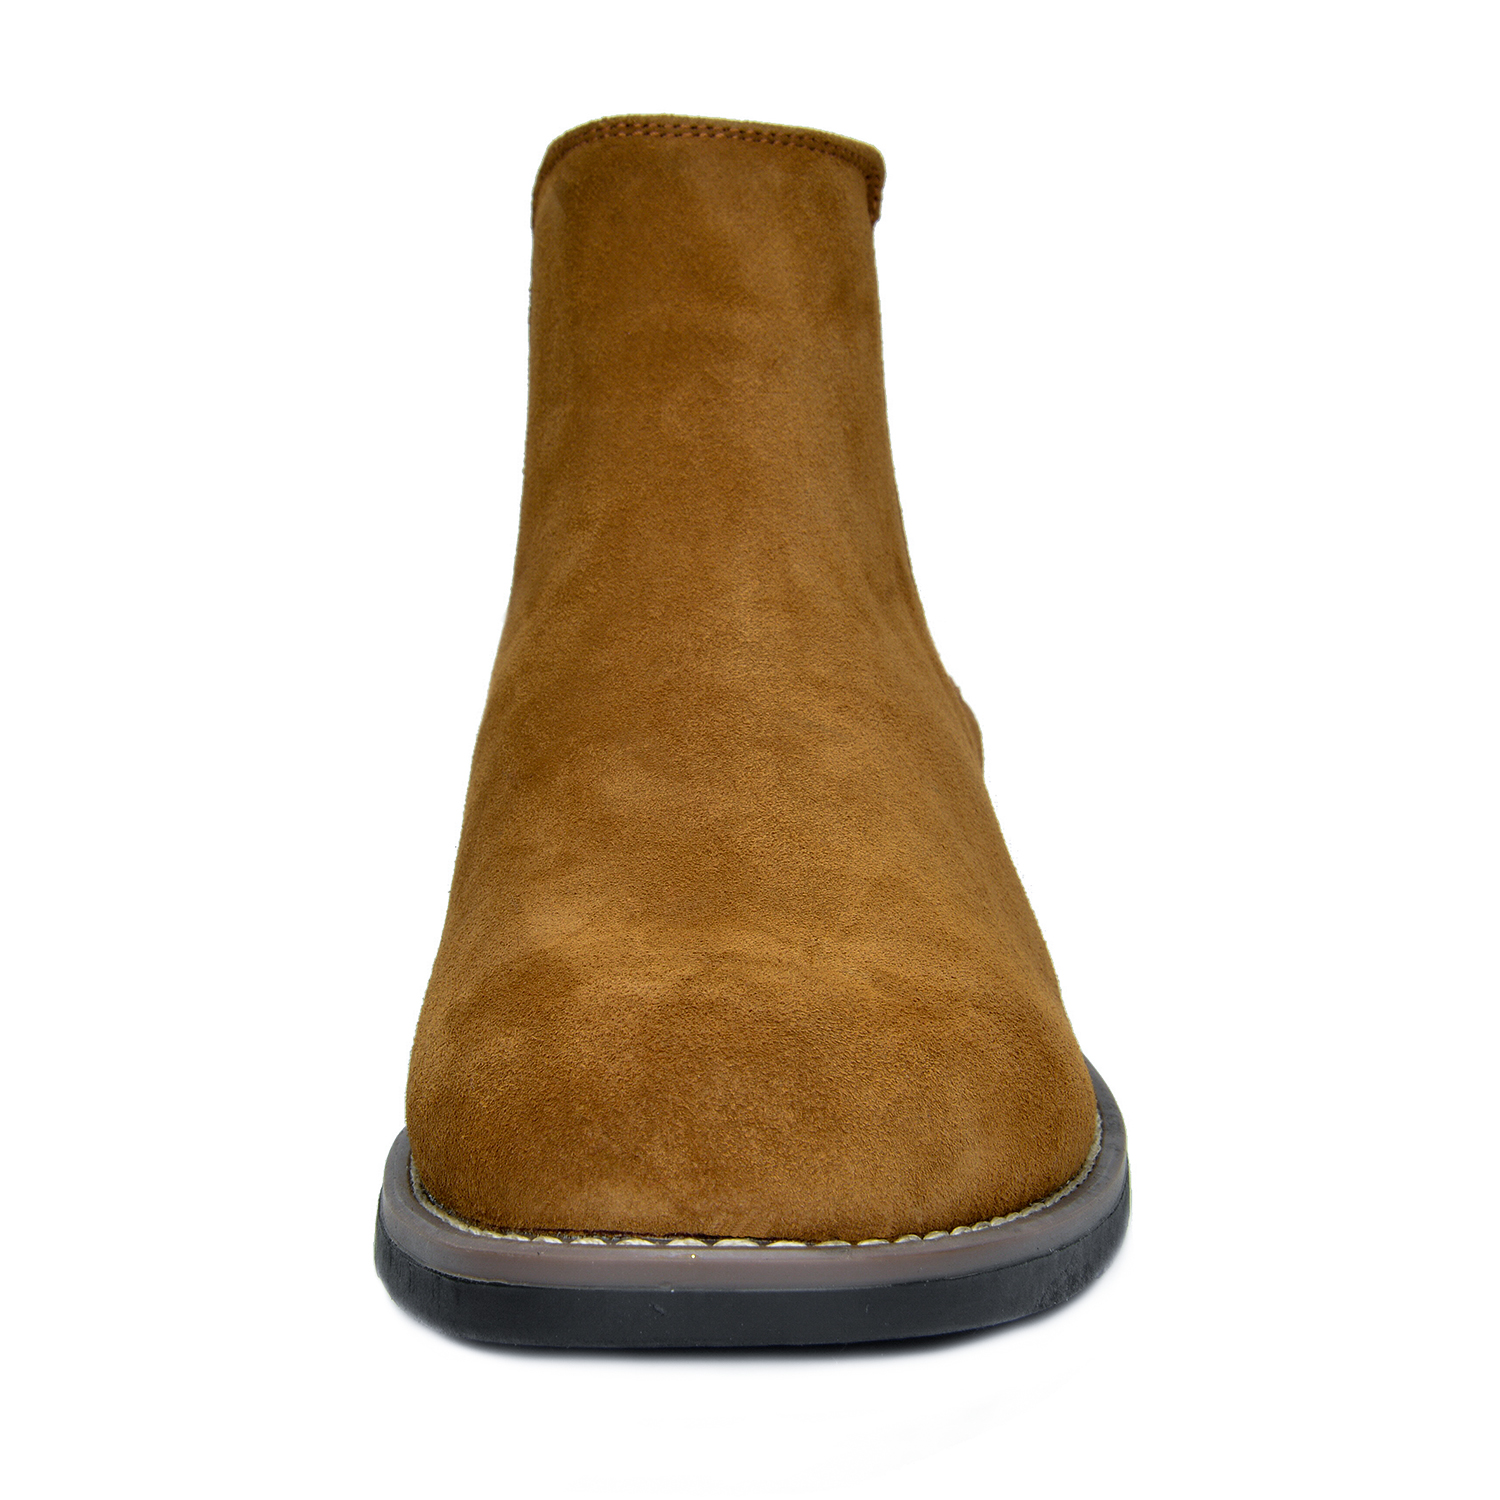 BRUNO-MARC-Men-URBAN-Suede-Leather-Chelsea-Chukka-Dress-Ankle-Boots-Casual-Shoes thumbnail 24